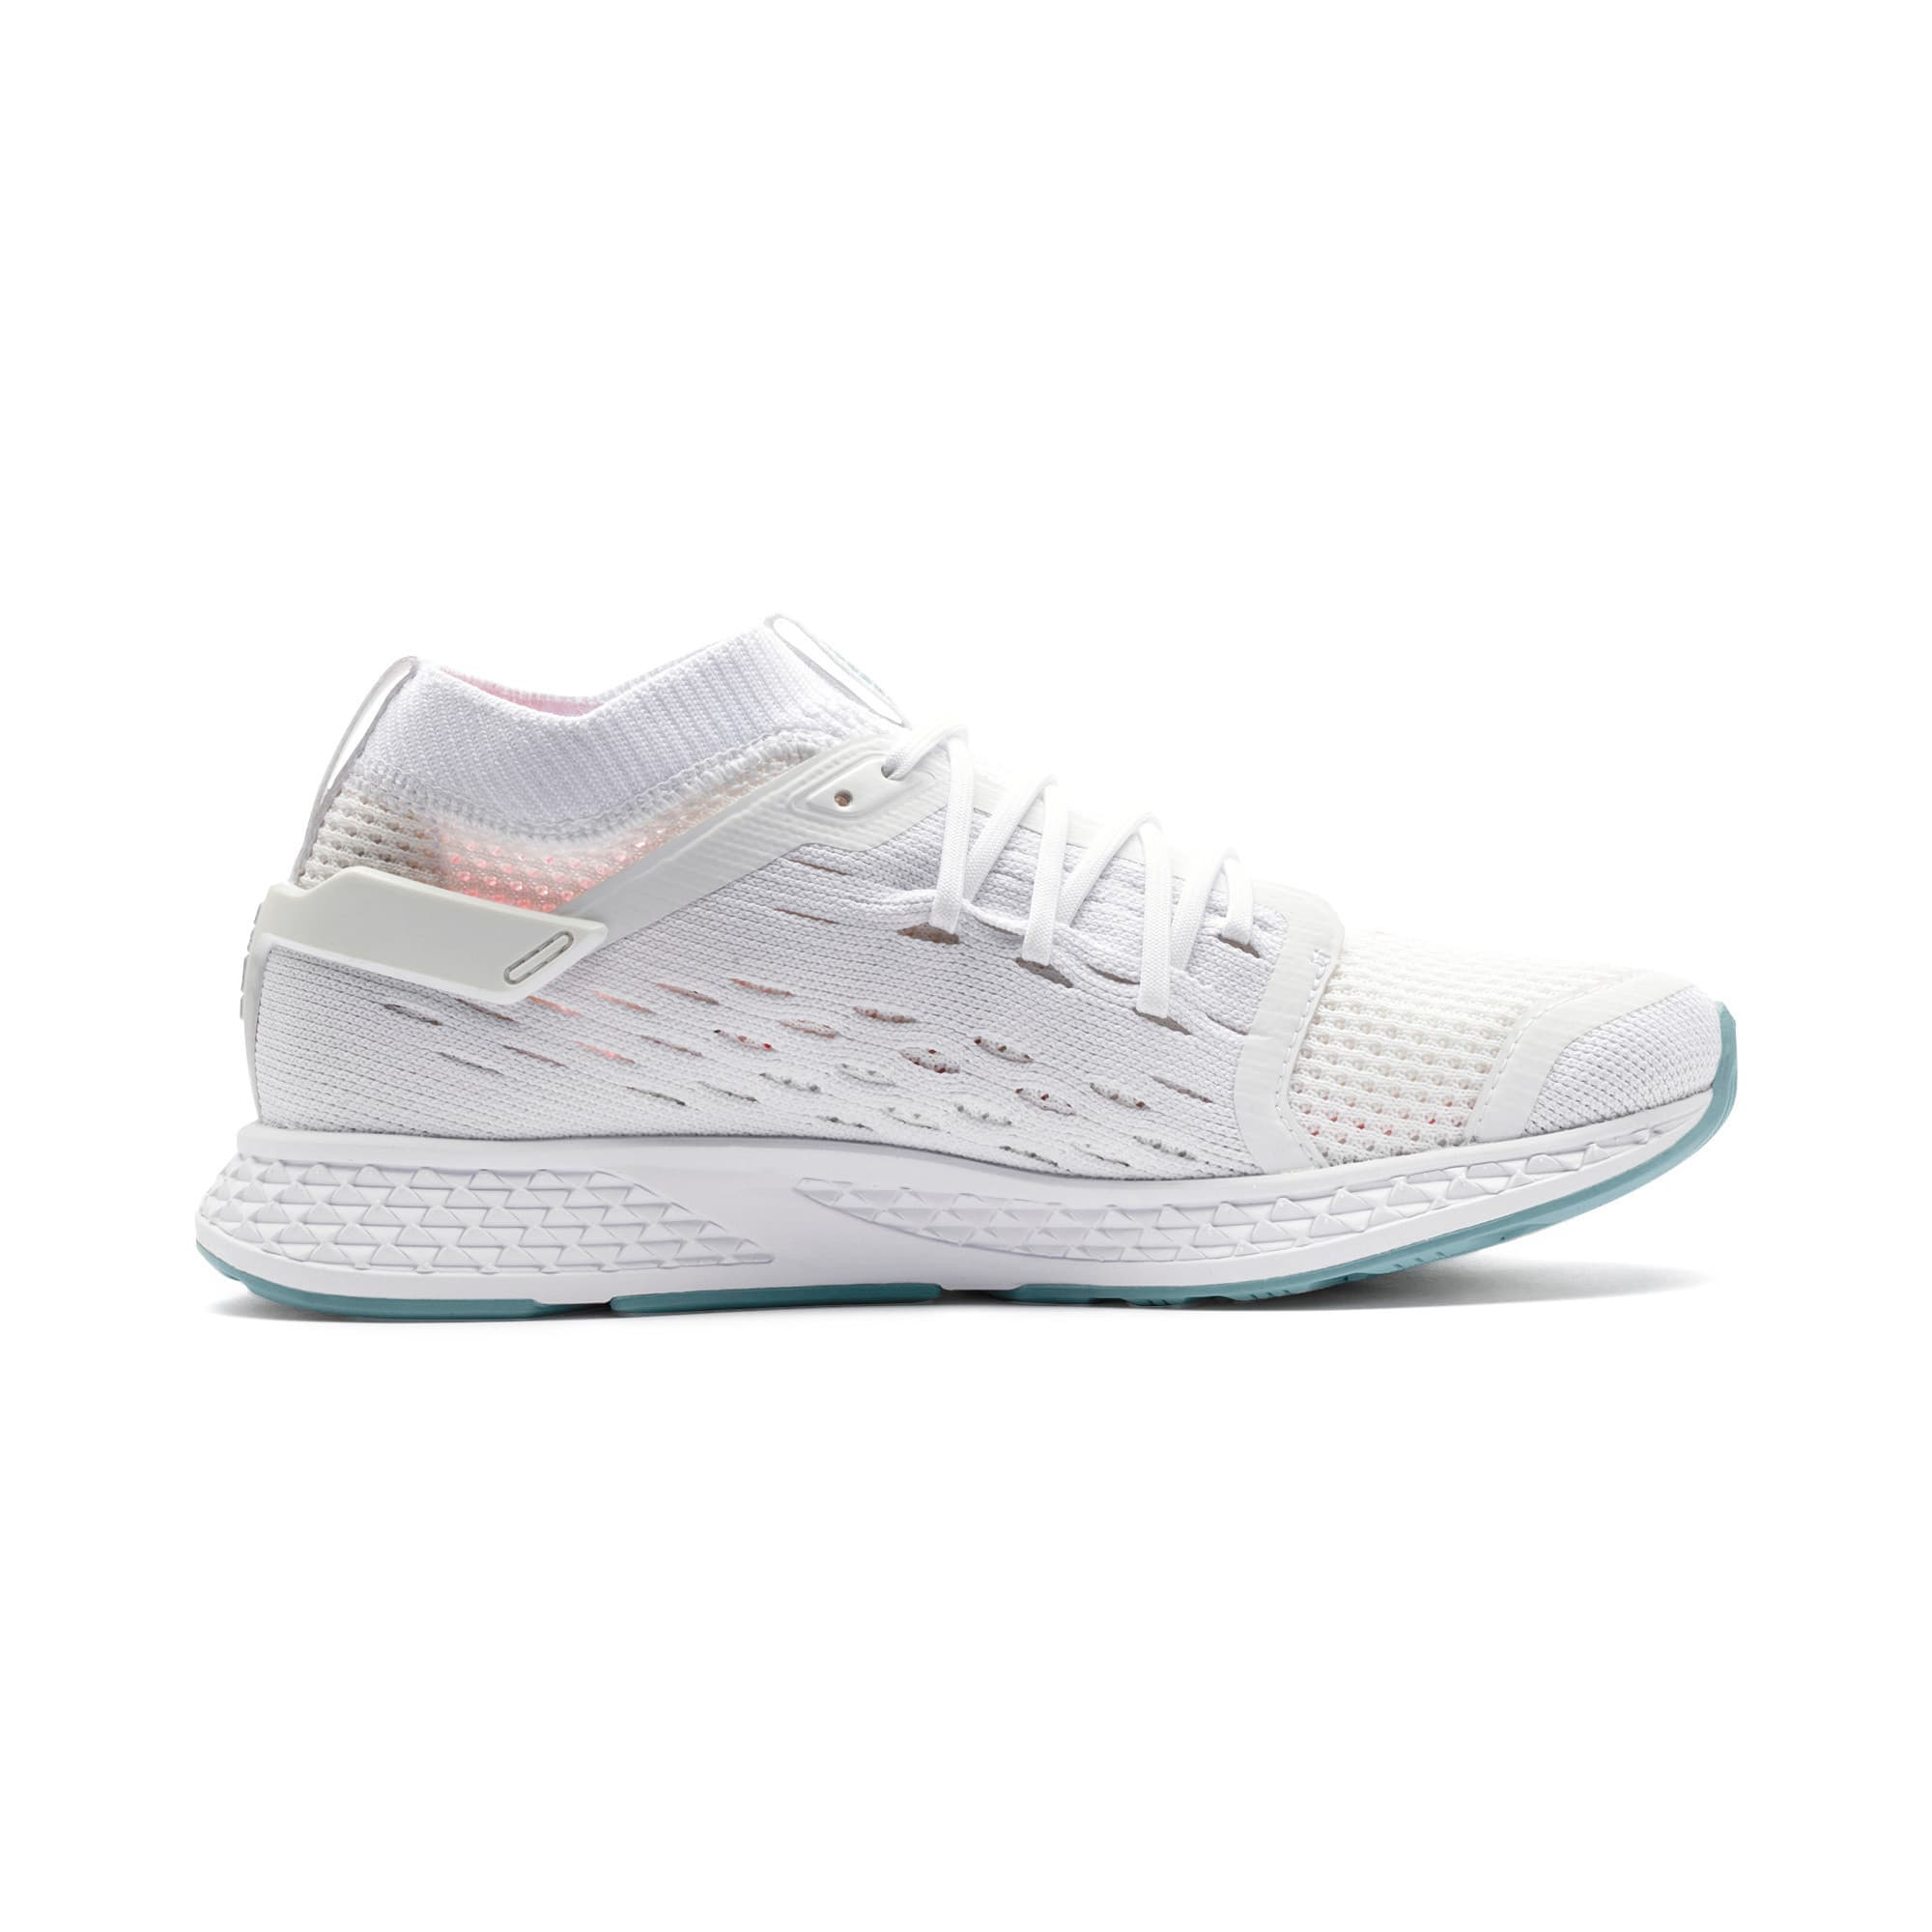 Thumbnail 6 of SPEED 500 Women's Running Shoes, White-Silver-Milky Blue-Pink, medium